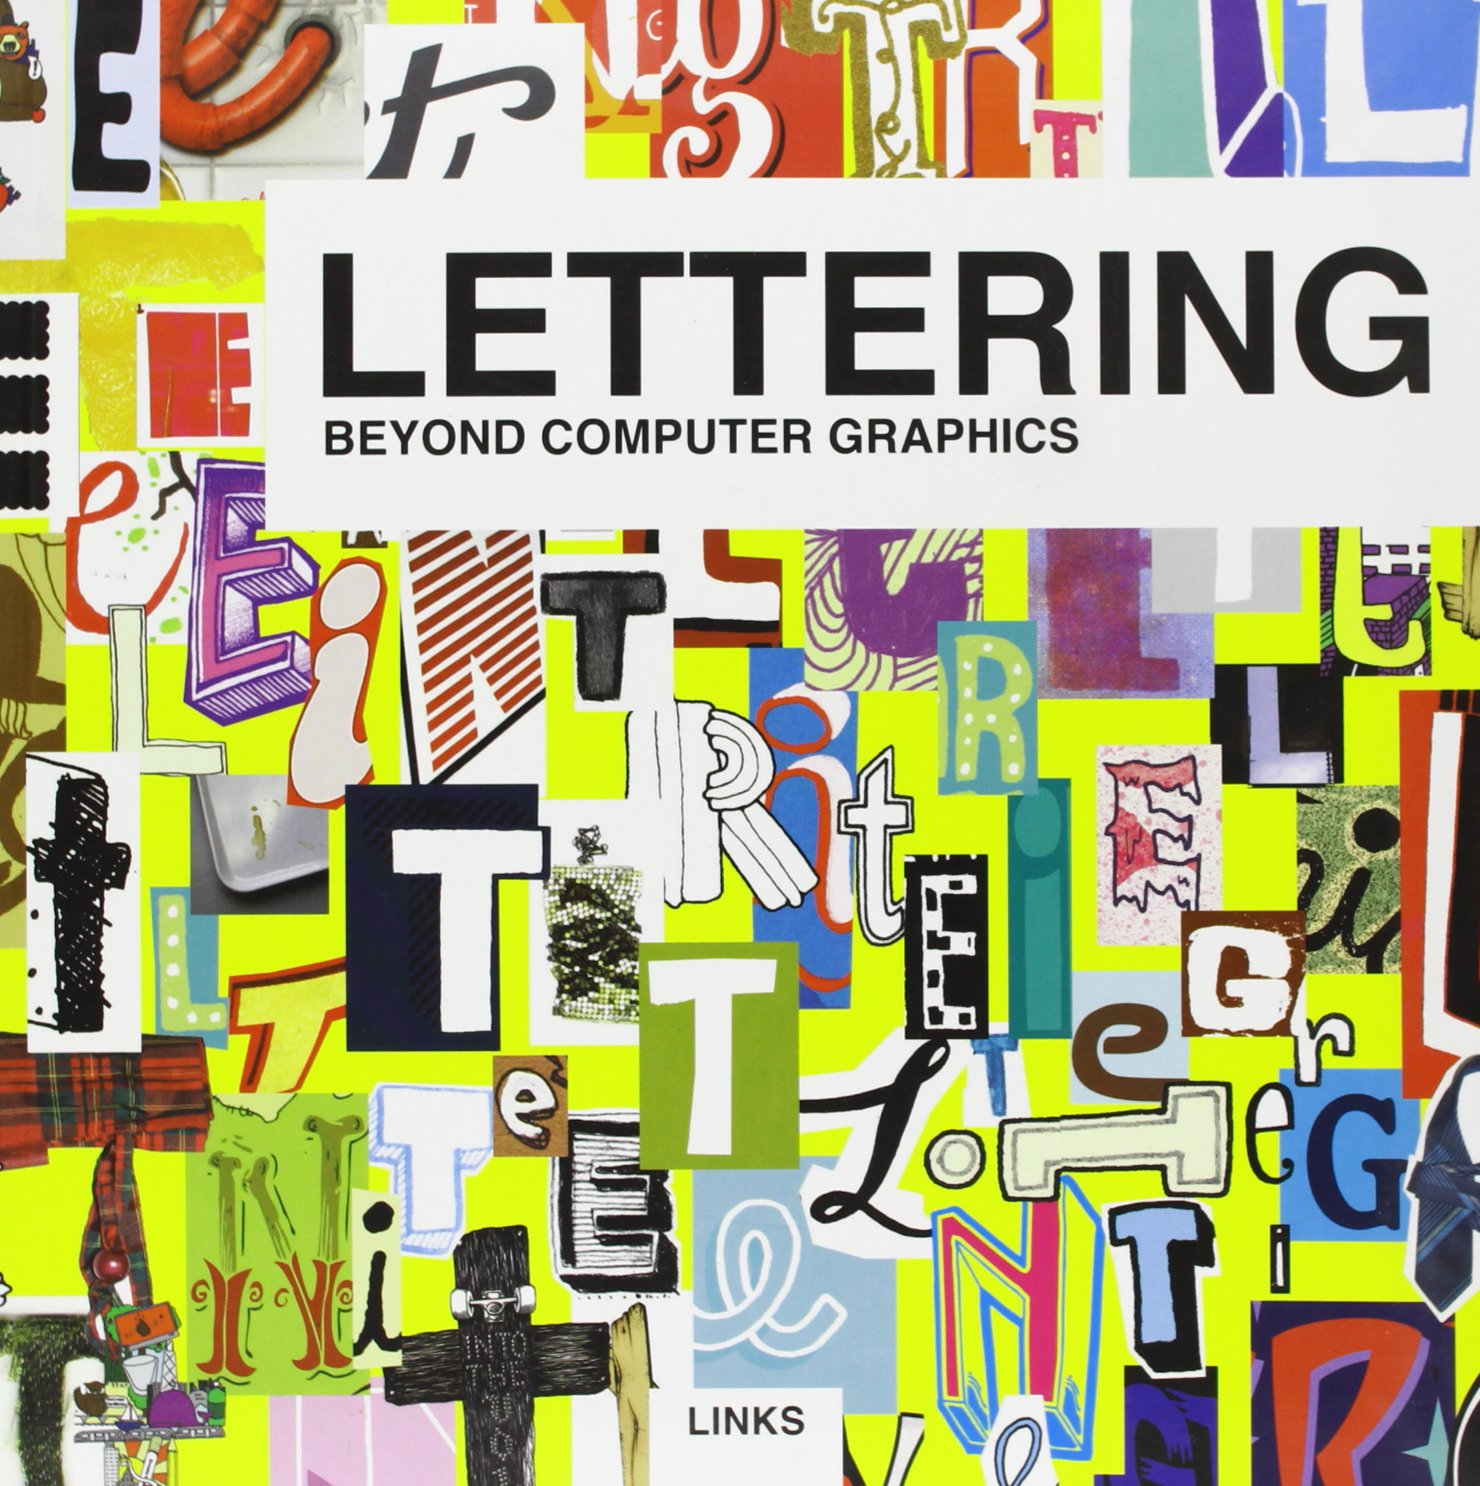 Lettering: Beyond Computer Graphics